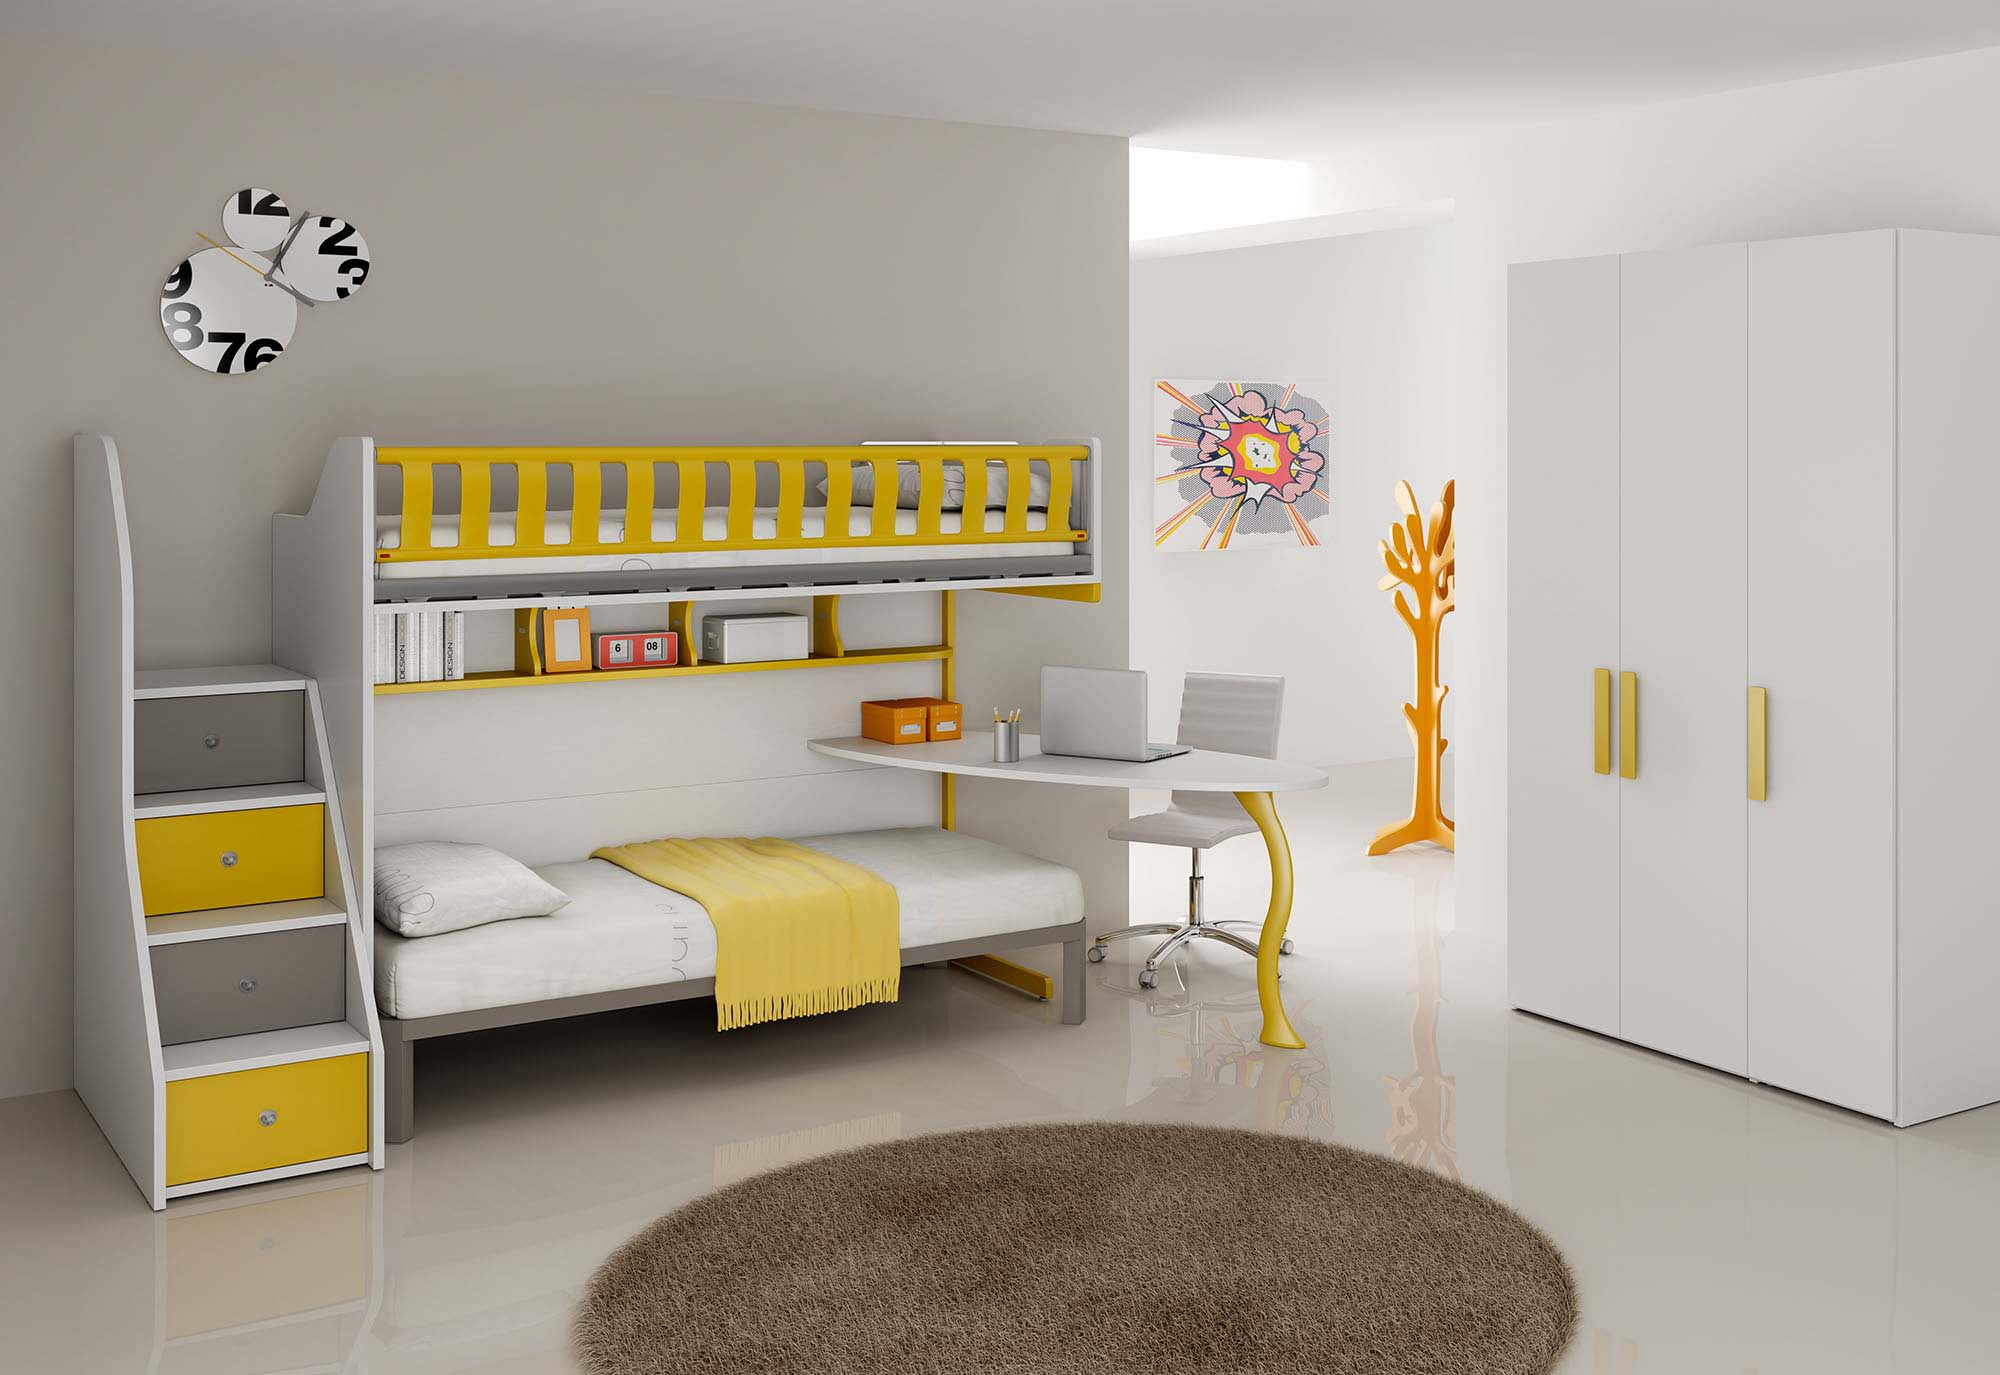 Chambre jaune moutarde - Lits superposes en l ...